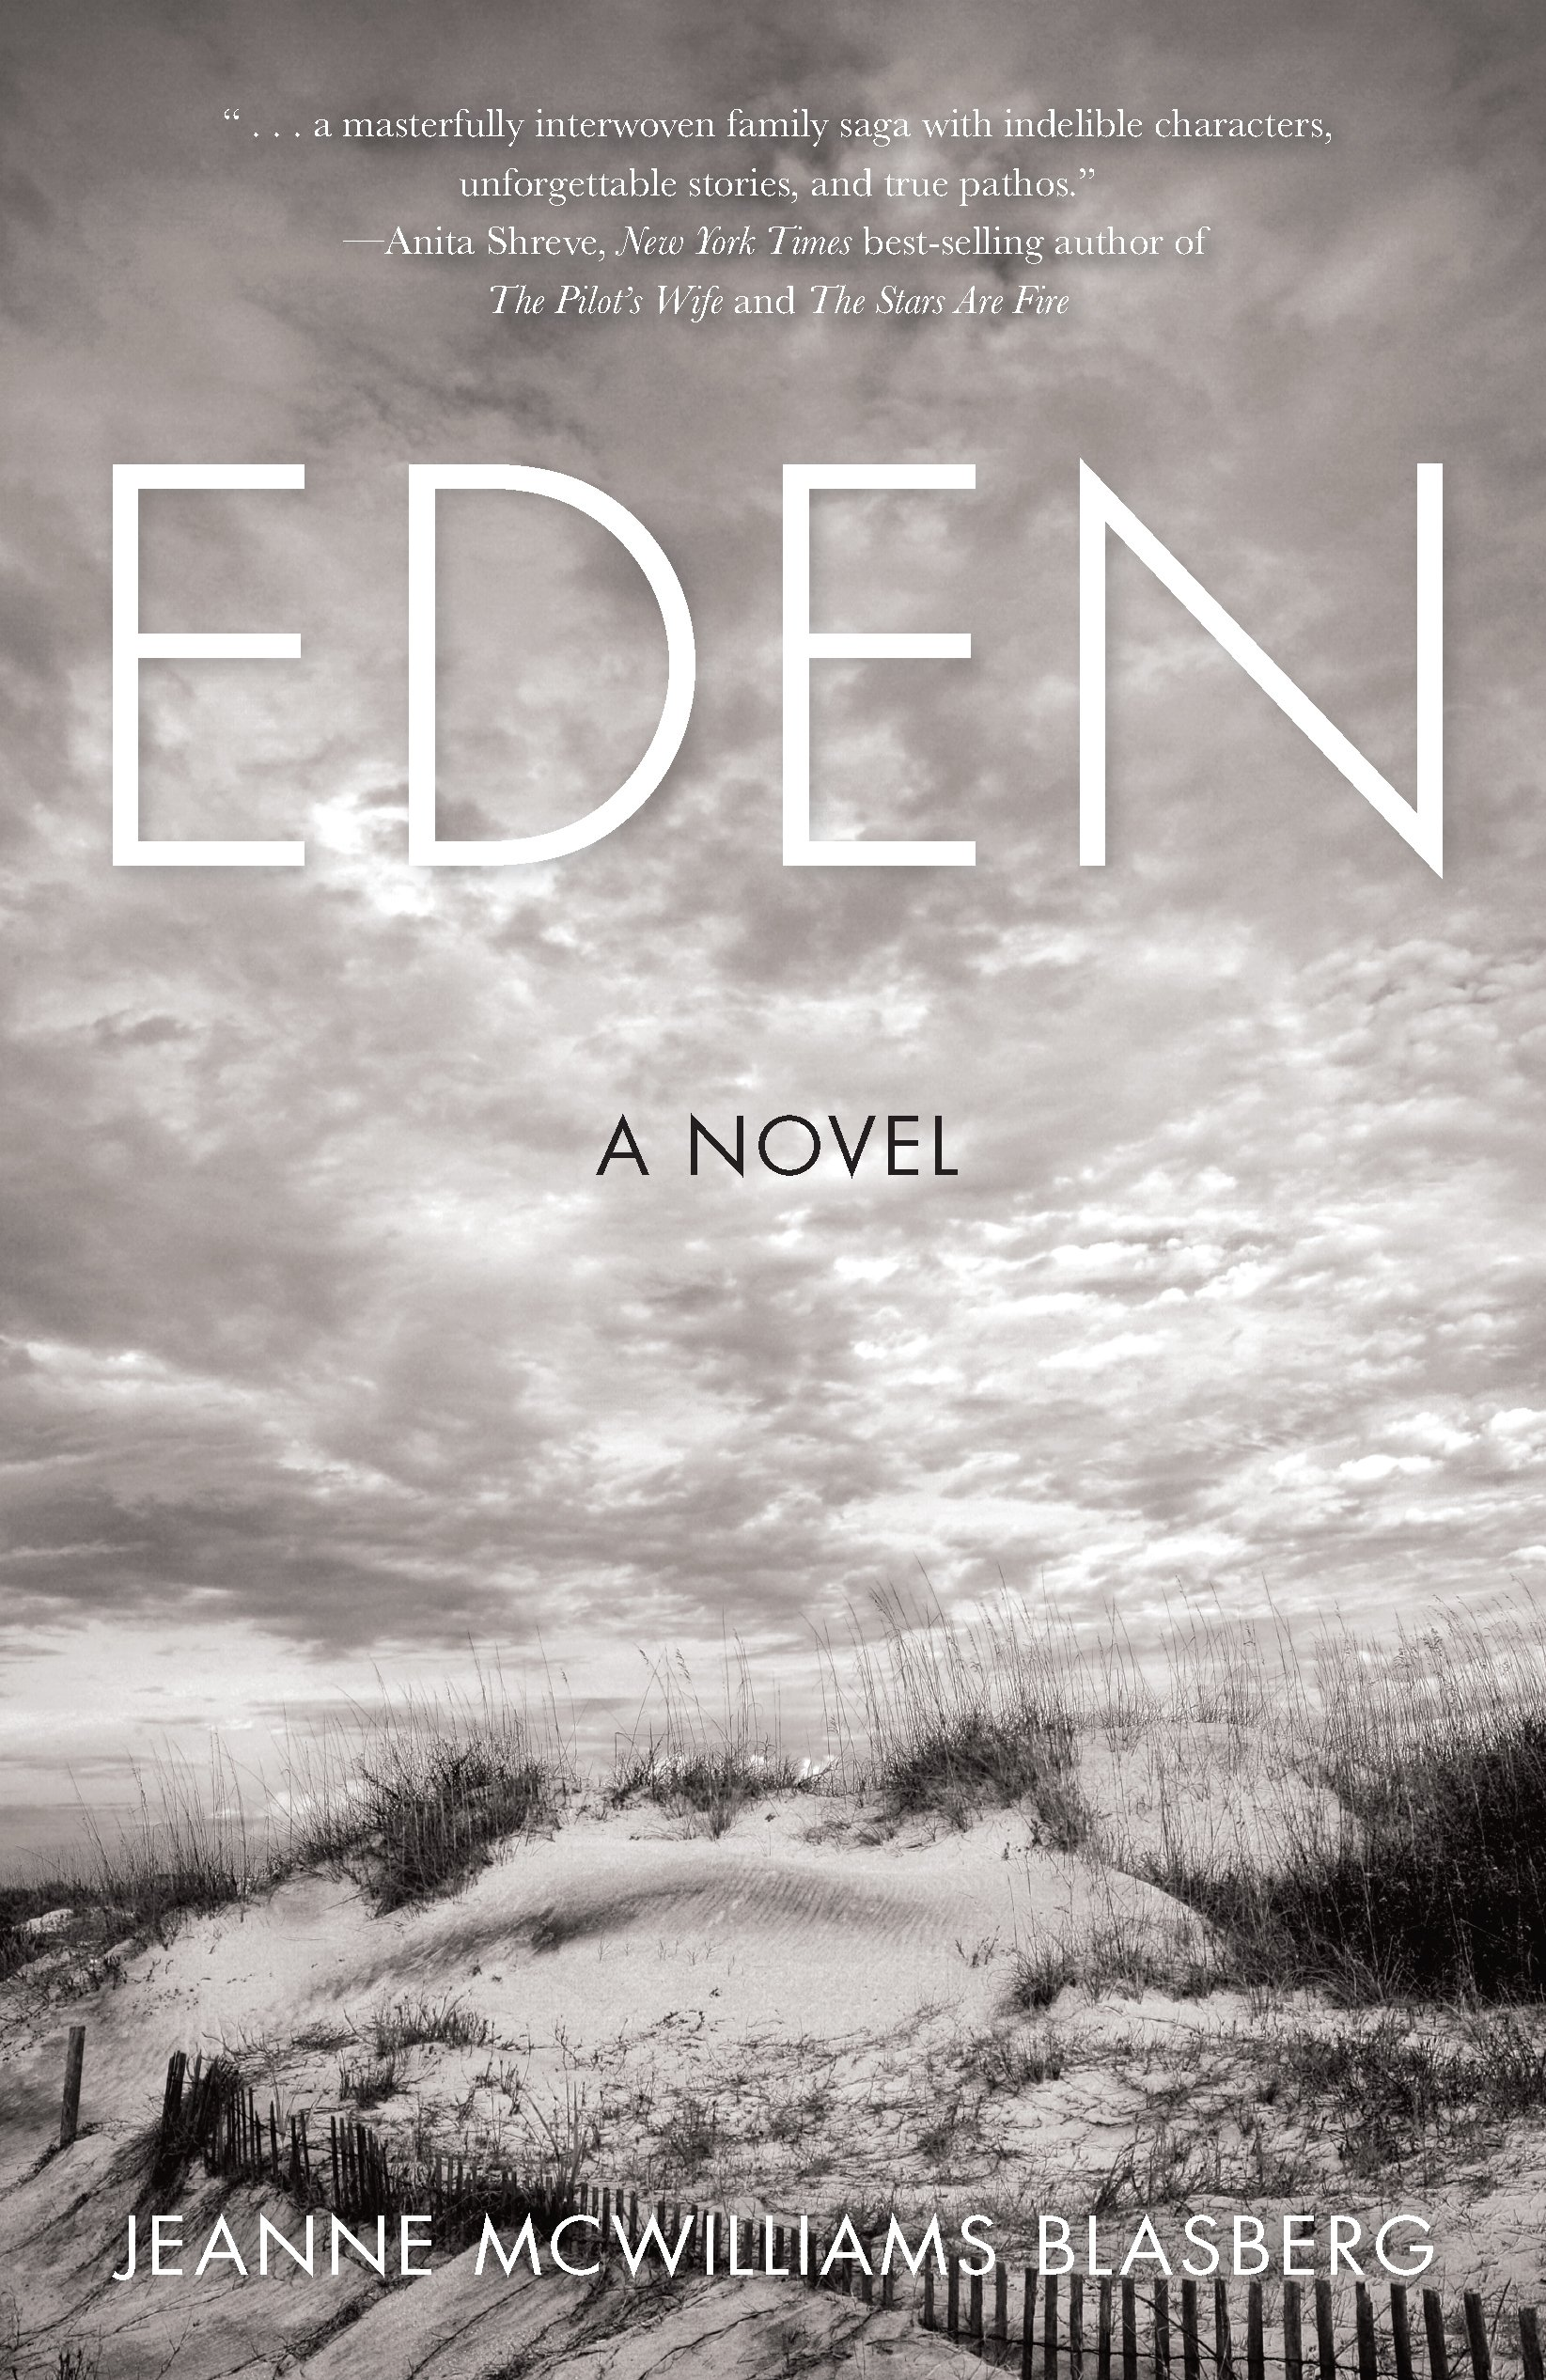 Eden: A Novel  by Jeanne McWilliams Blasberg  (She Writes Press)    READ MORE